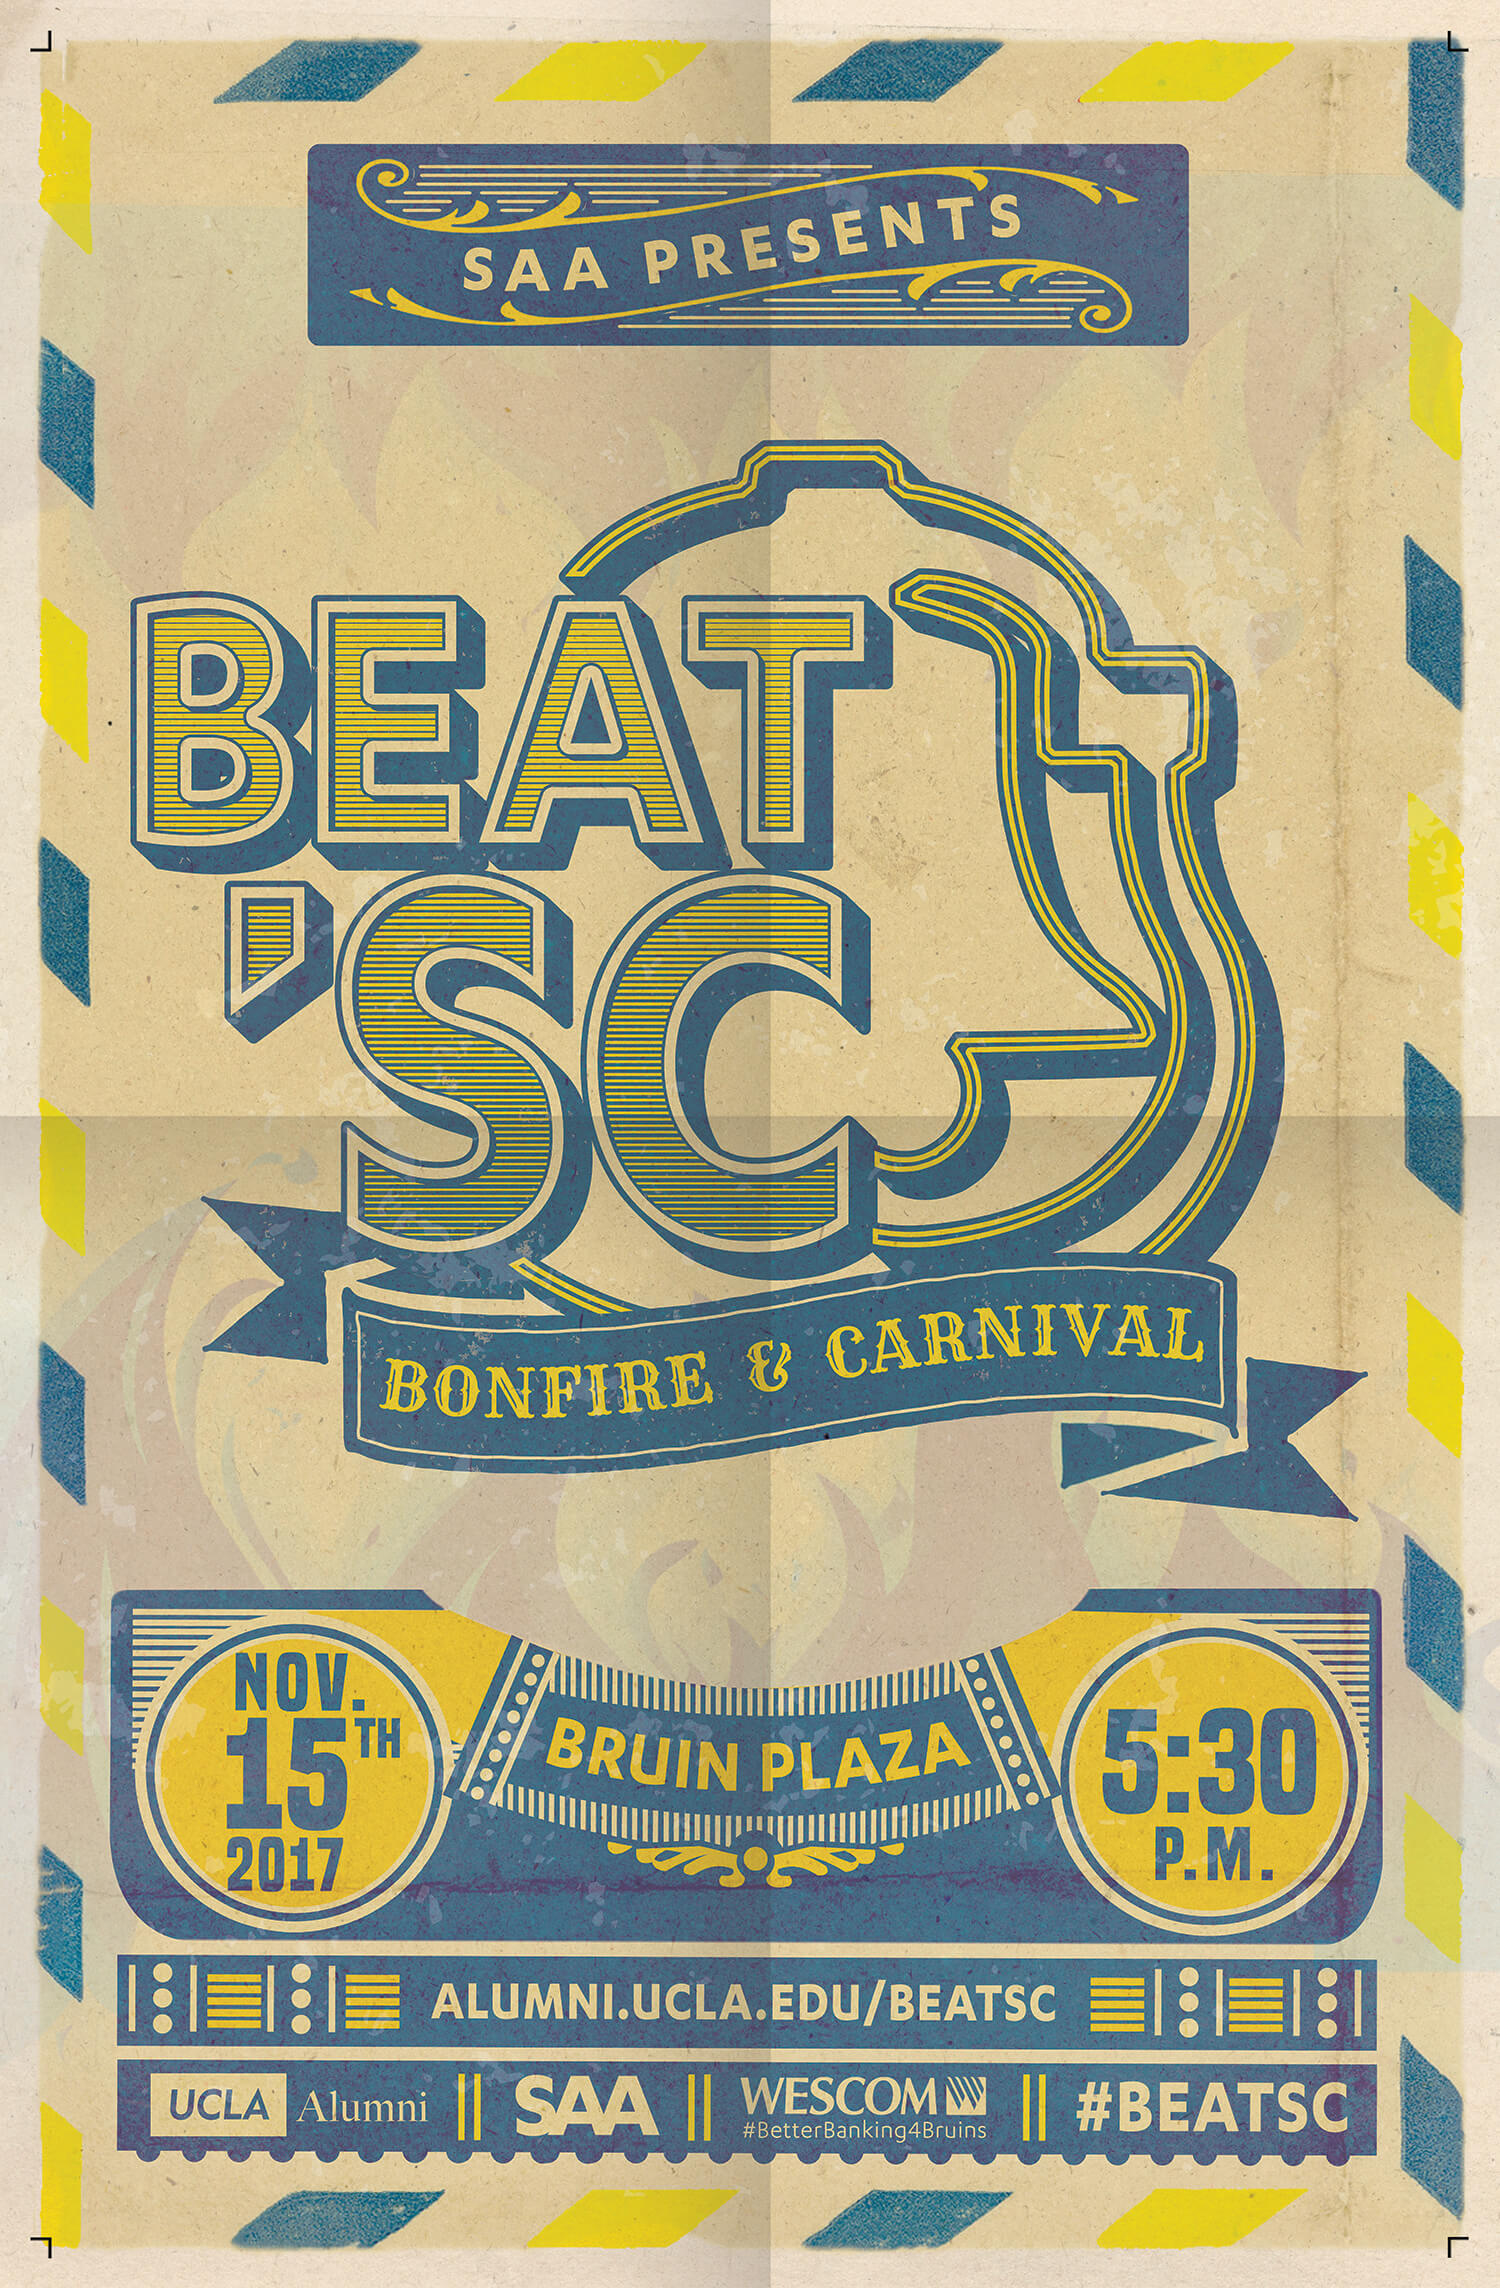 Transformed the modern event artwork for UCLA Alumni's Beat 'SC event into classic carnival collateral.